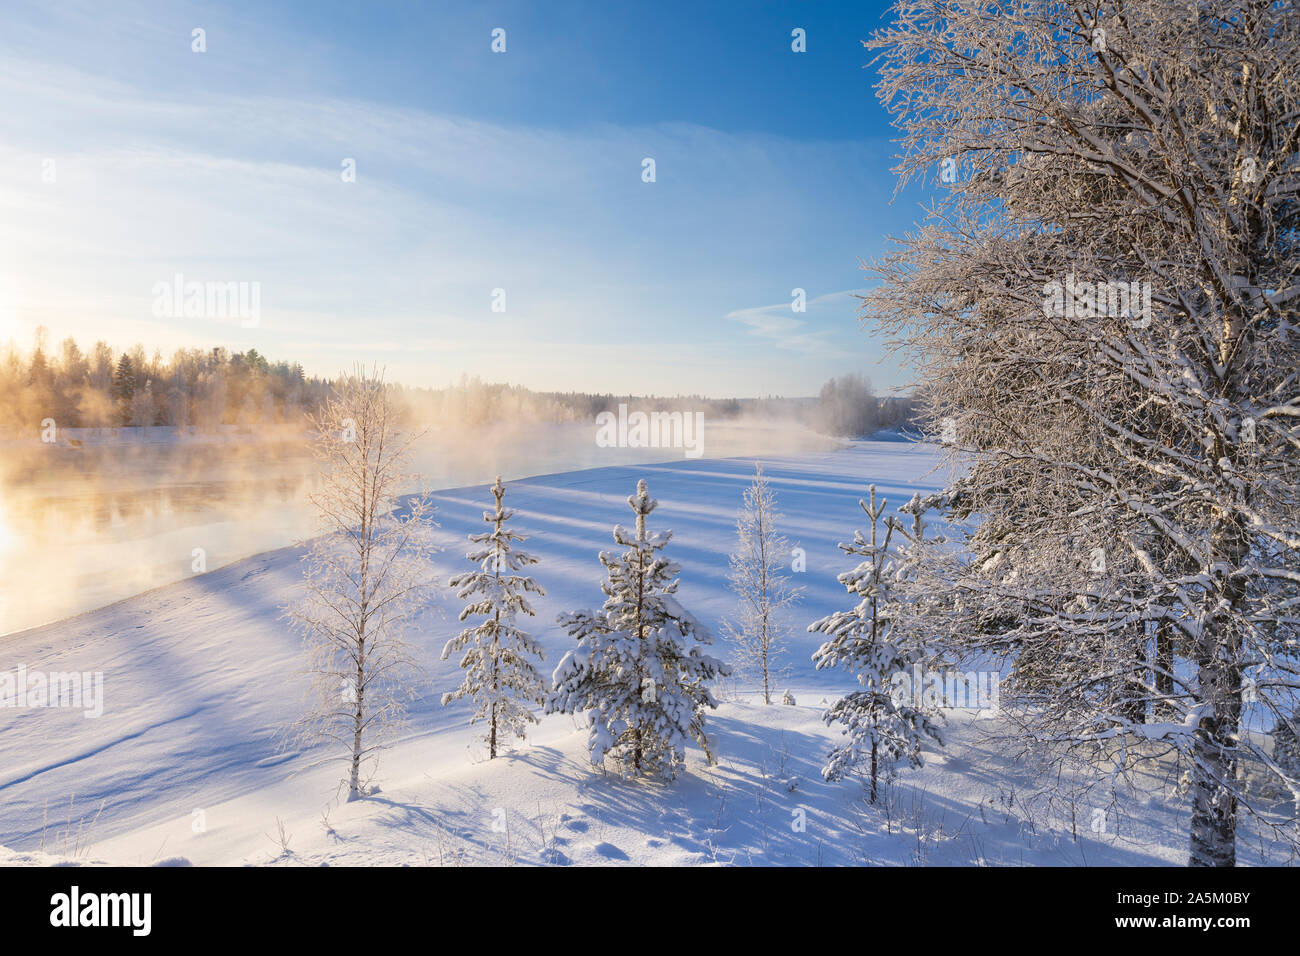 Mist over freezing river on a sunny cold winter day. Trees covered with frost and snow. Stock Photo